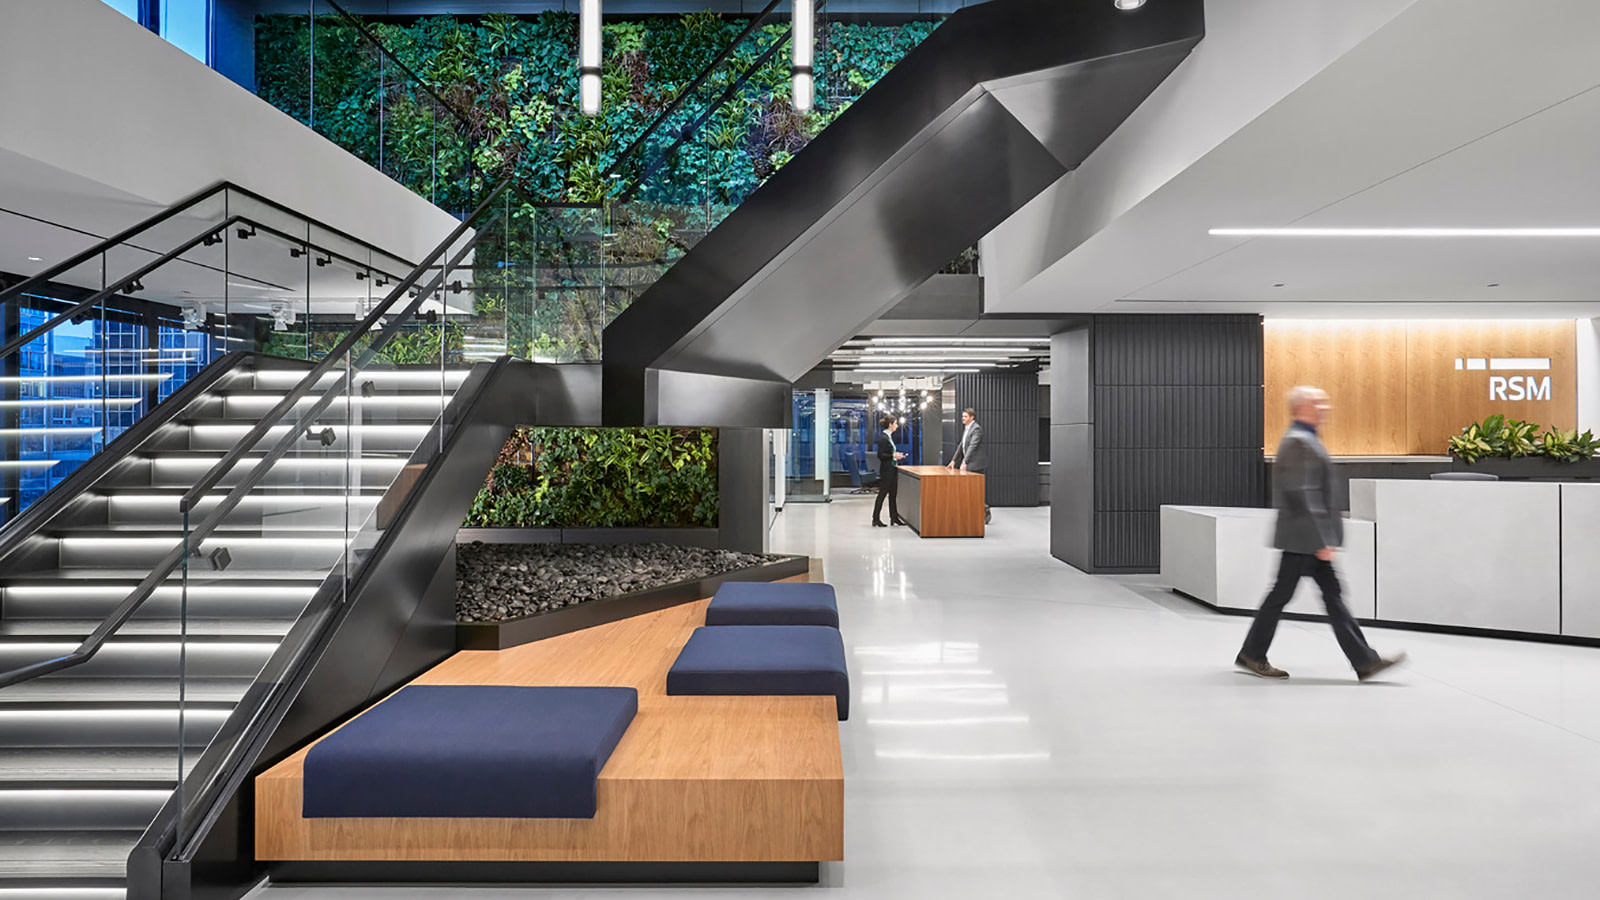 Biophilic wall at RSM central stair